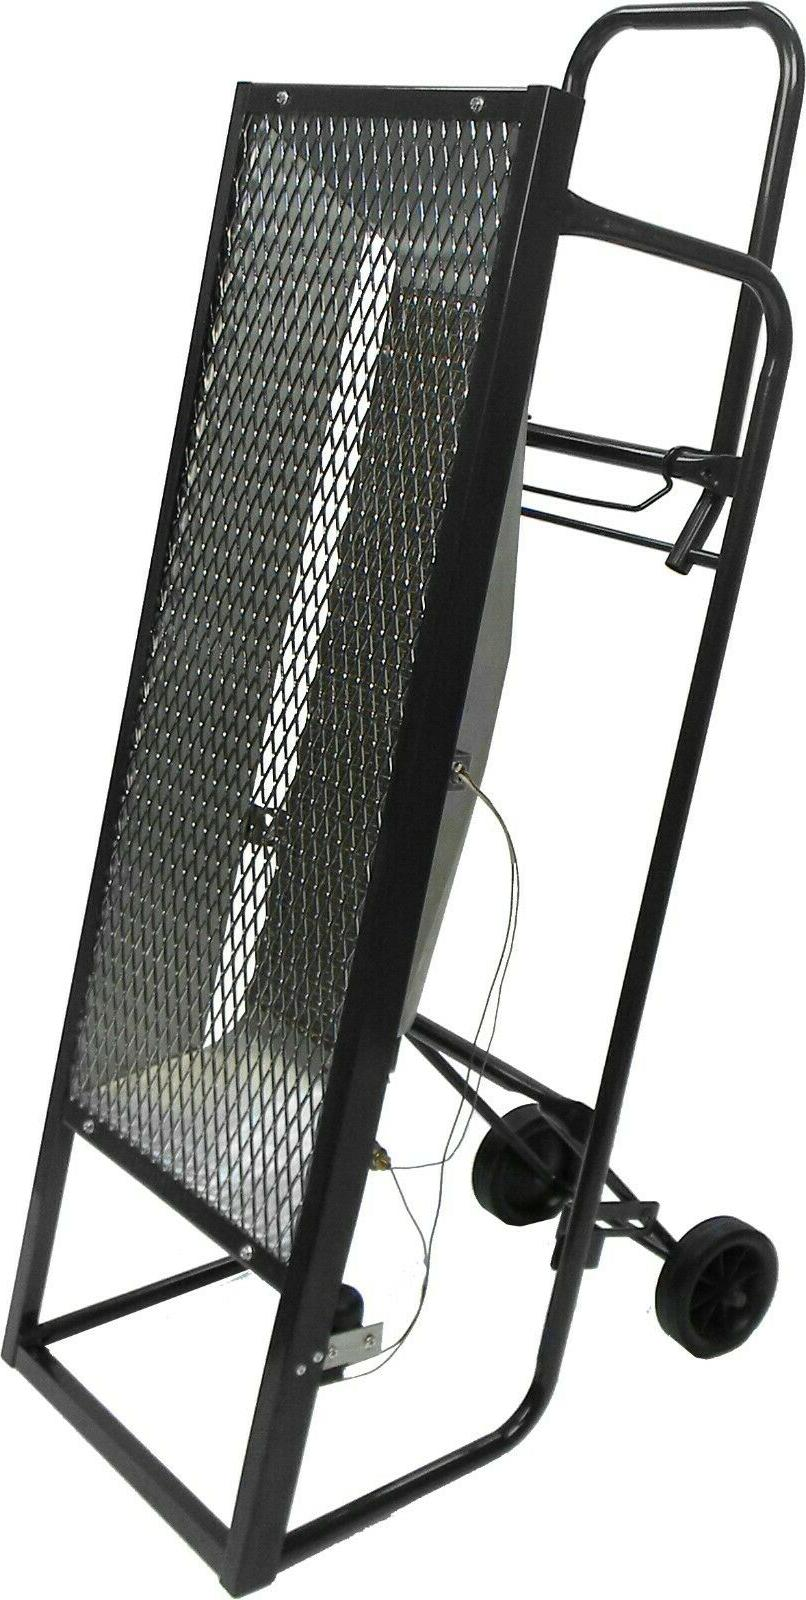 L.B. WHITE Sunblast 35 HEATER Flat Panel